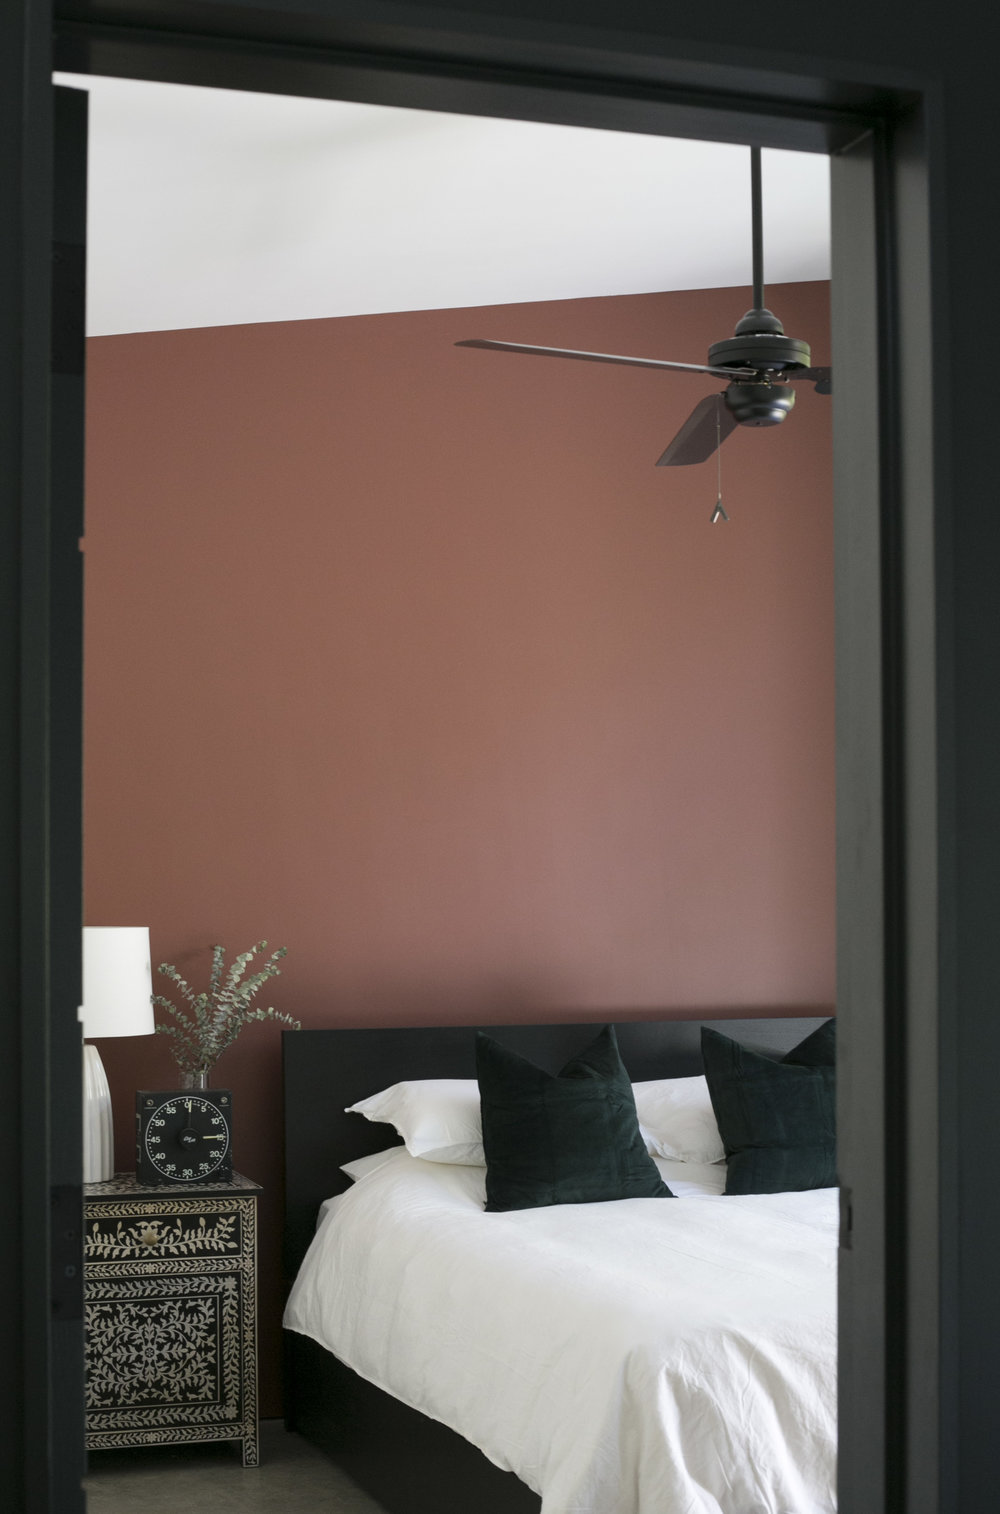 switch-house-bedroom-accent-wall-ceiling-fan.jpg